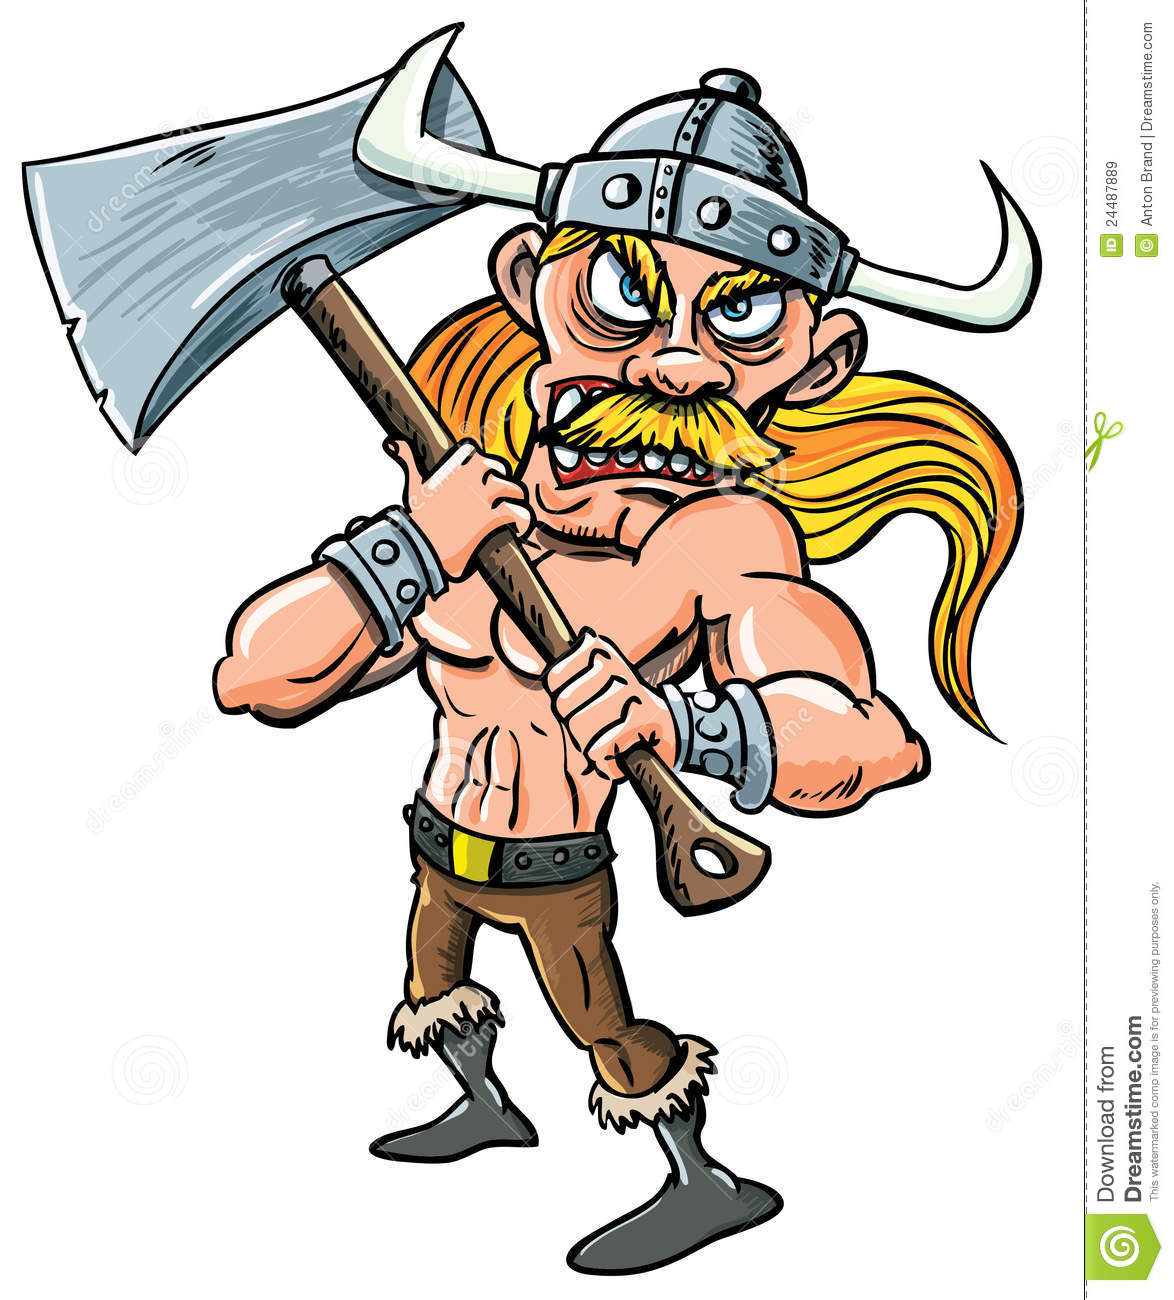 cartoon viking with huge axe royalty free stock images image